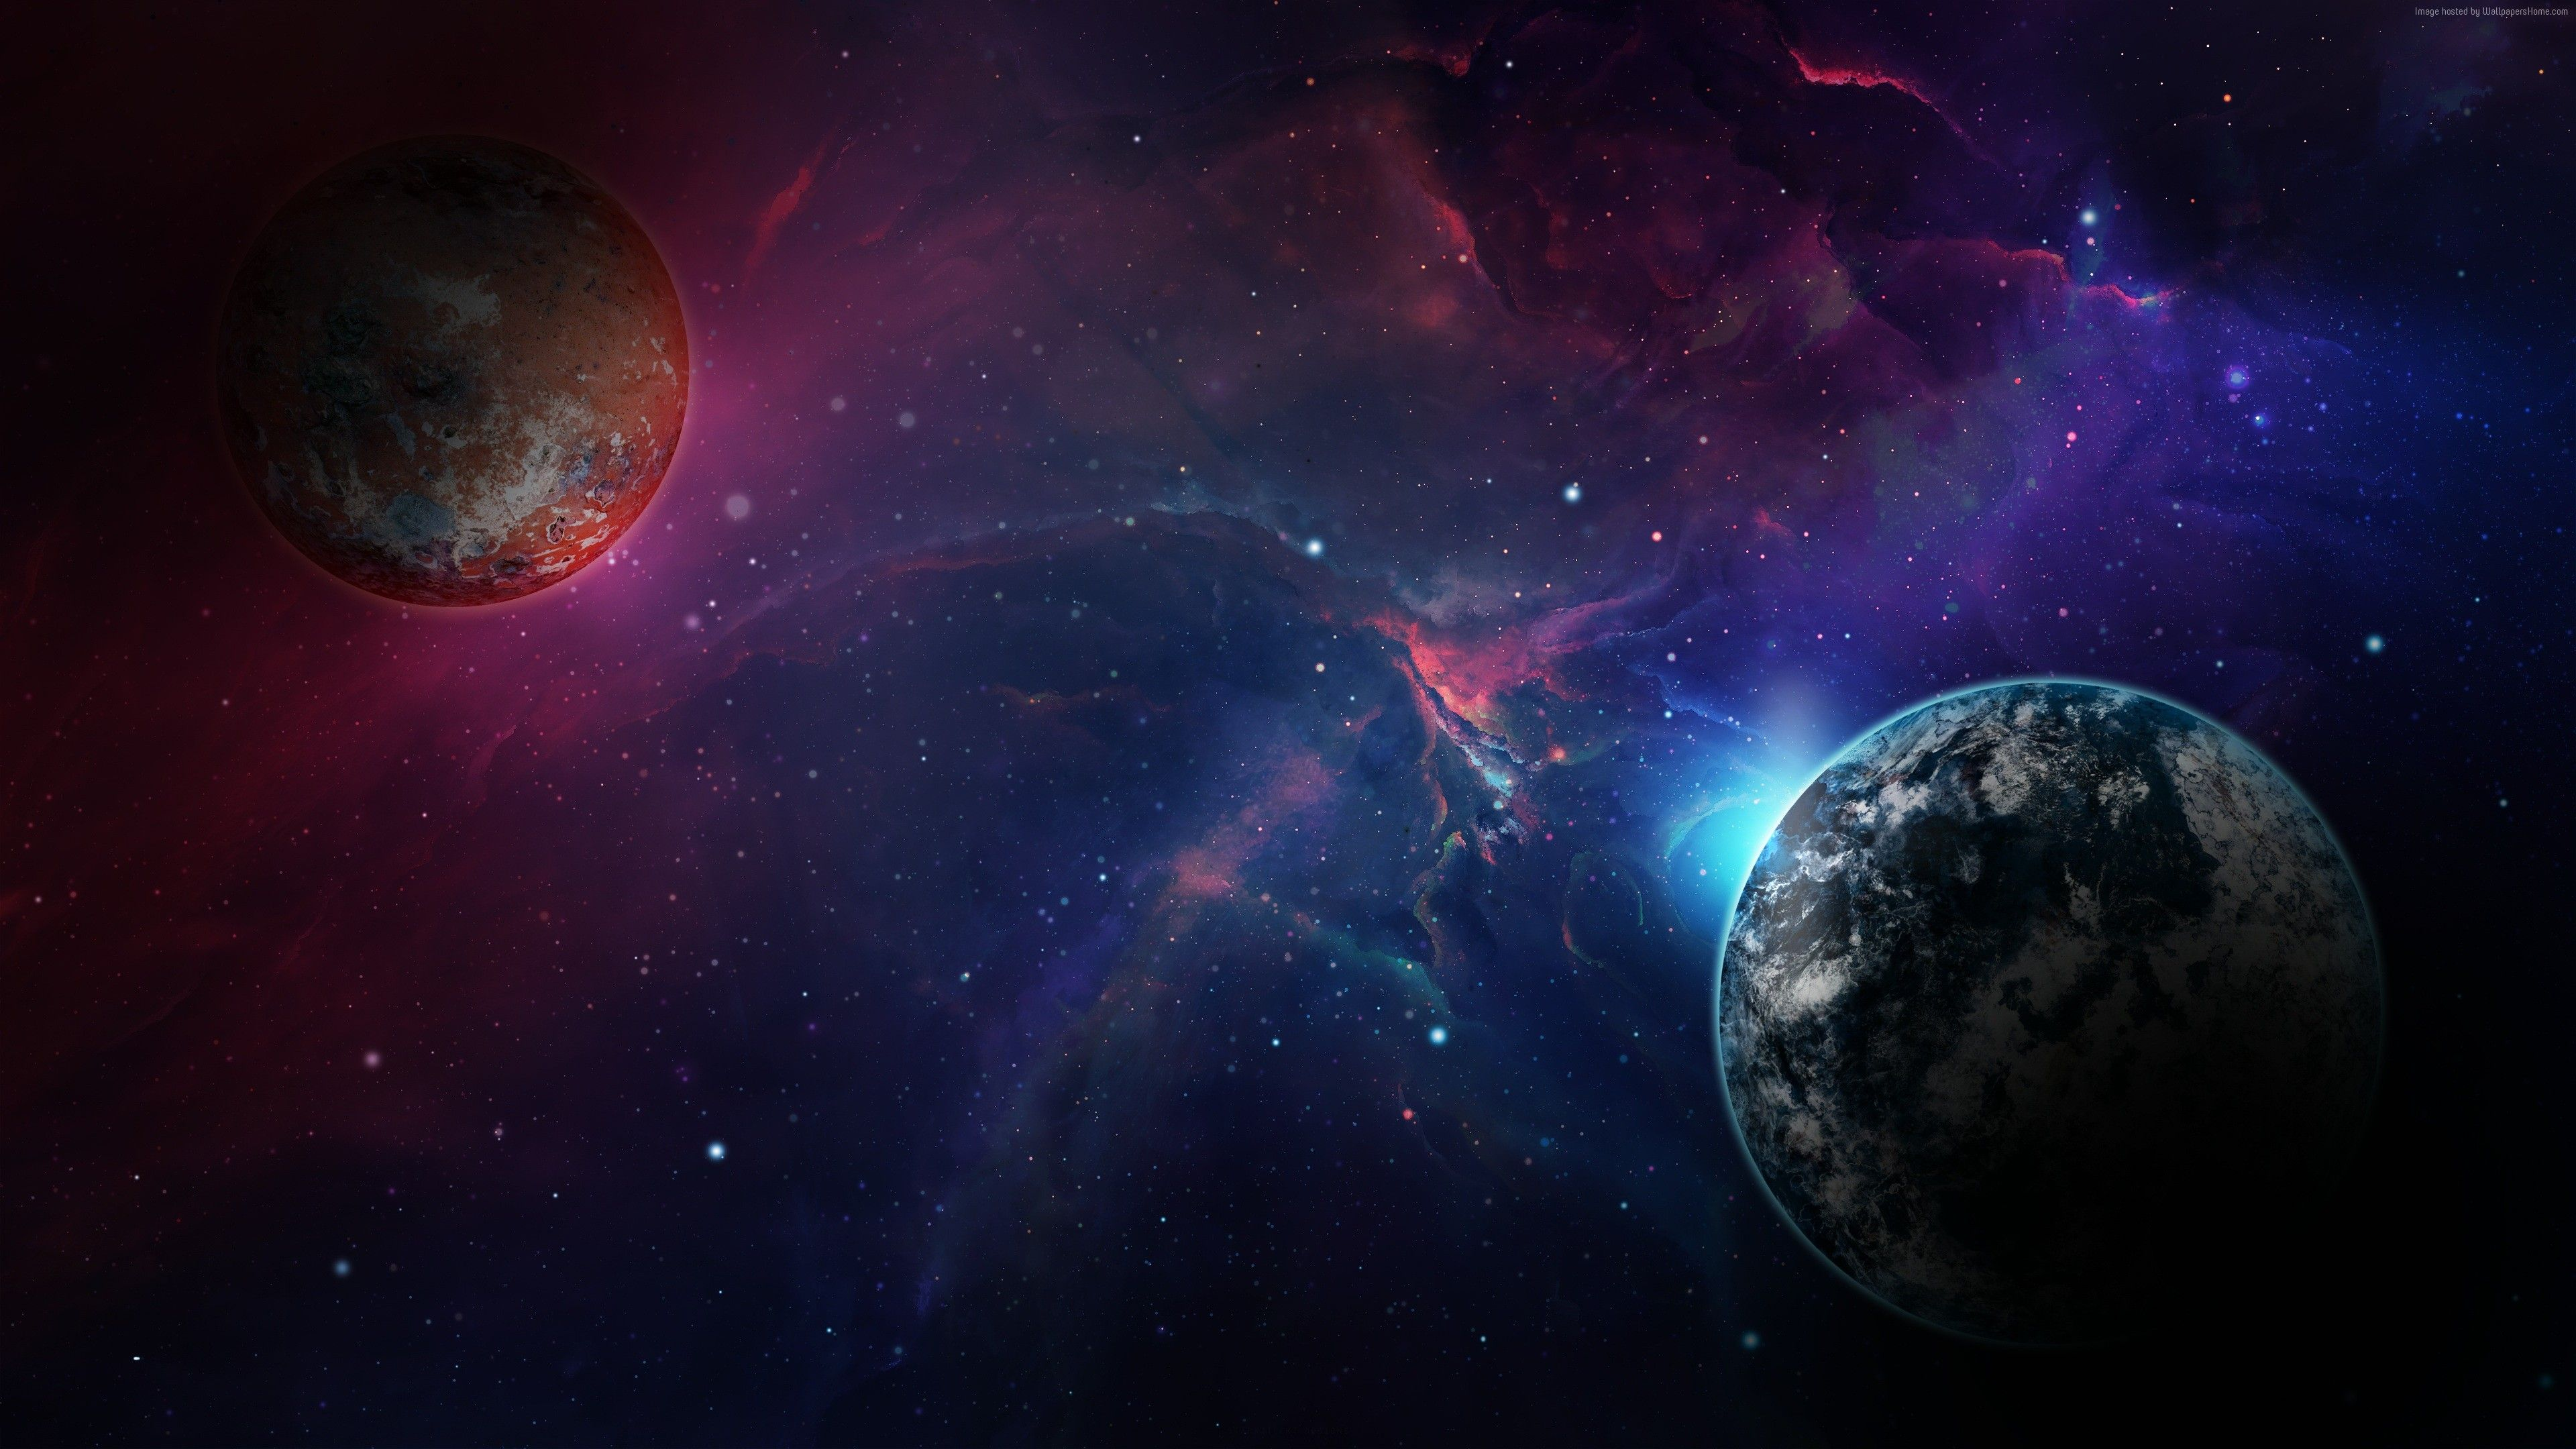 Galaxy Space Wallpaper 4k Apk Download: Top Free 4K Space Backgrounds